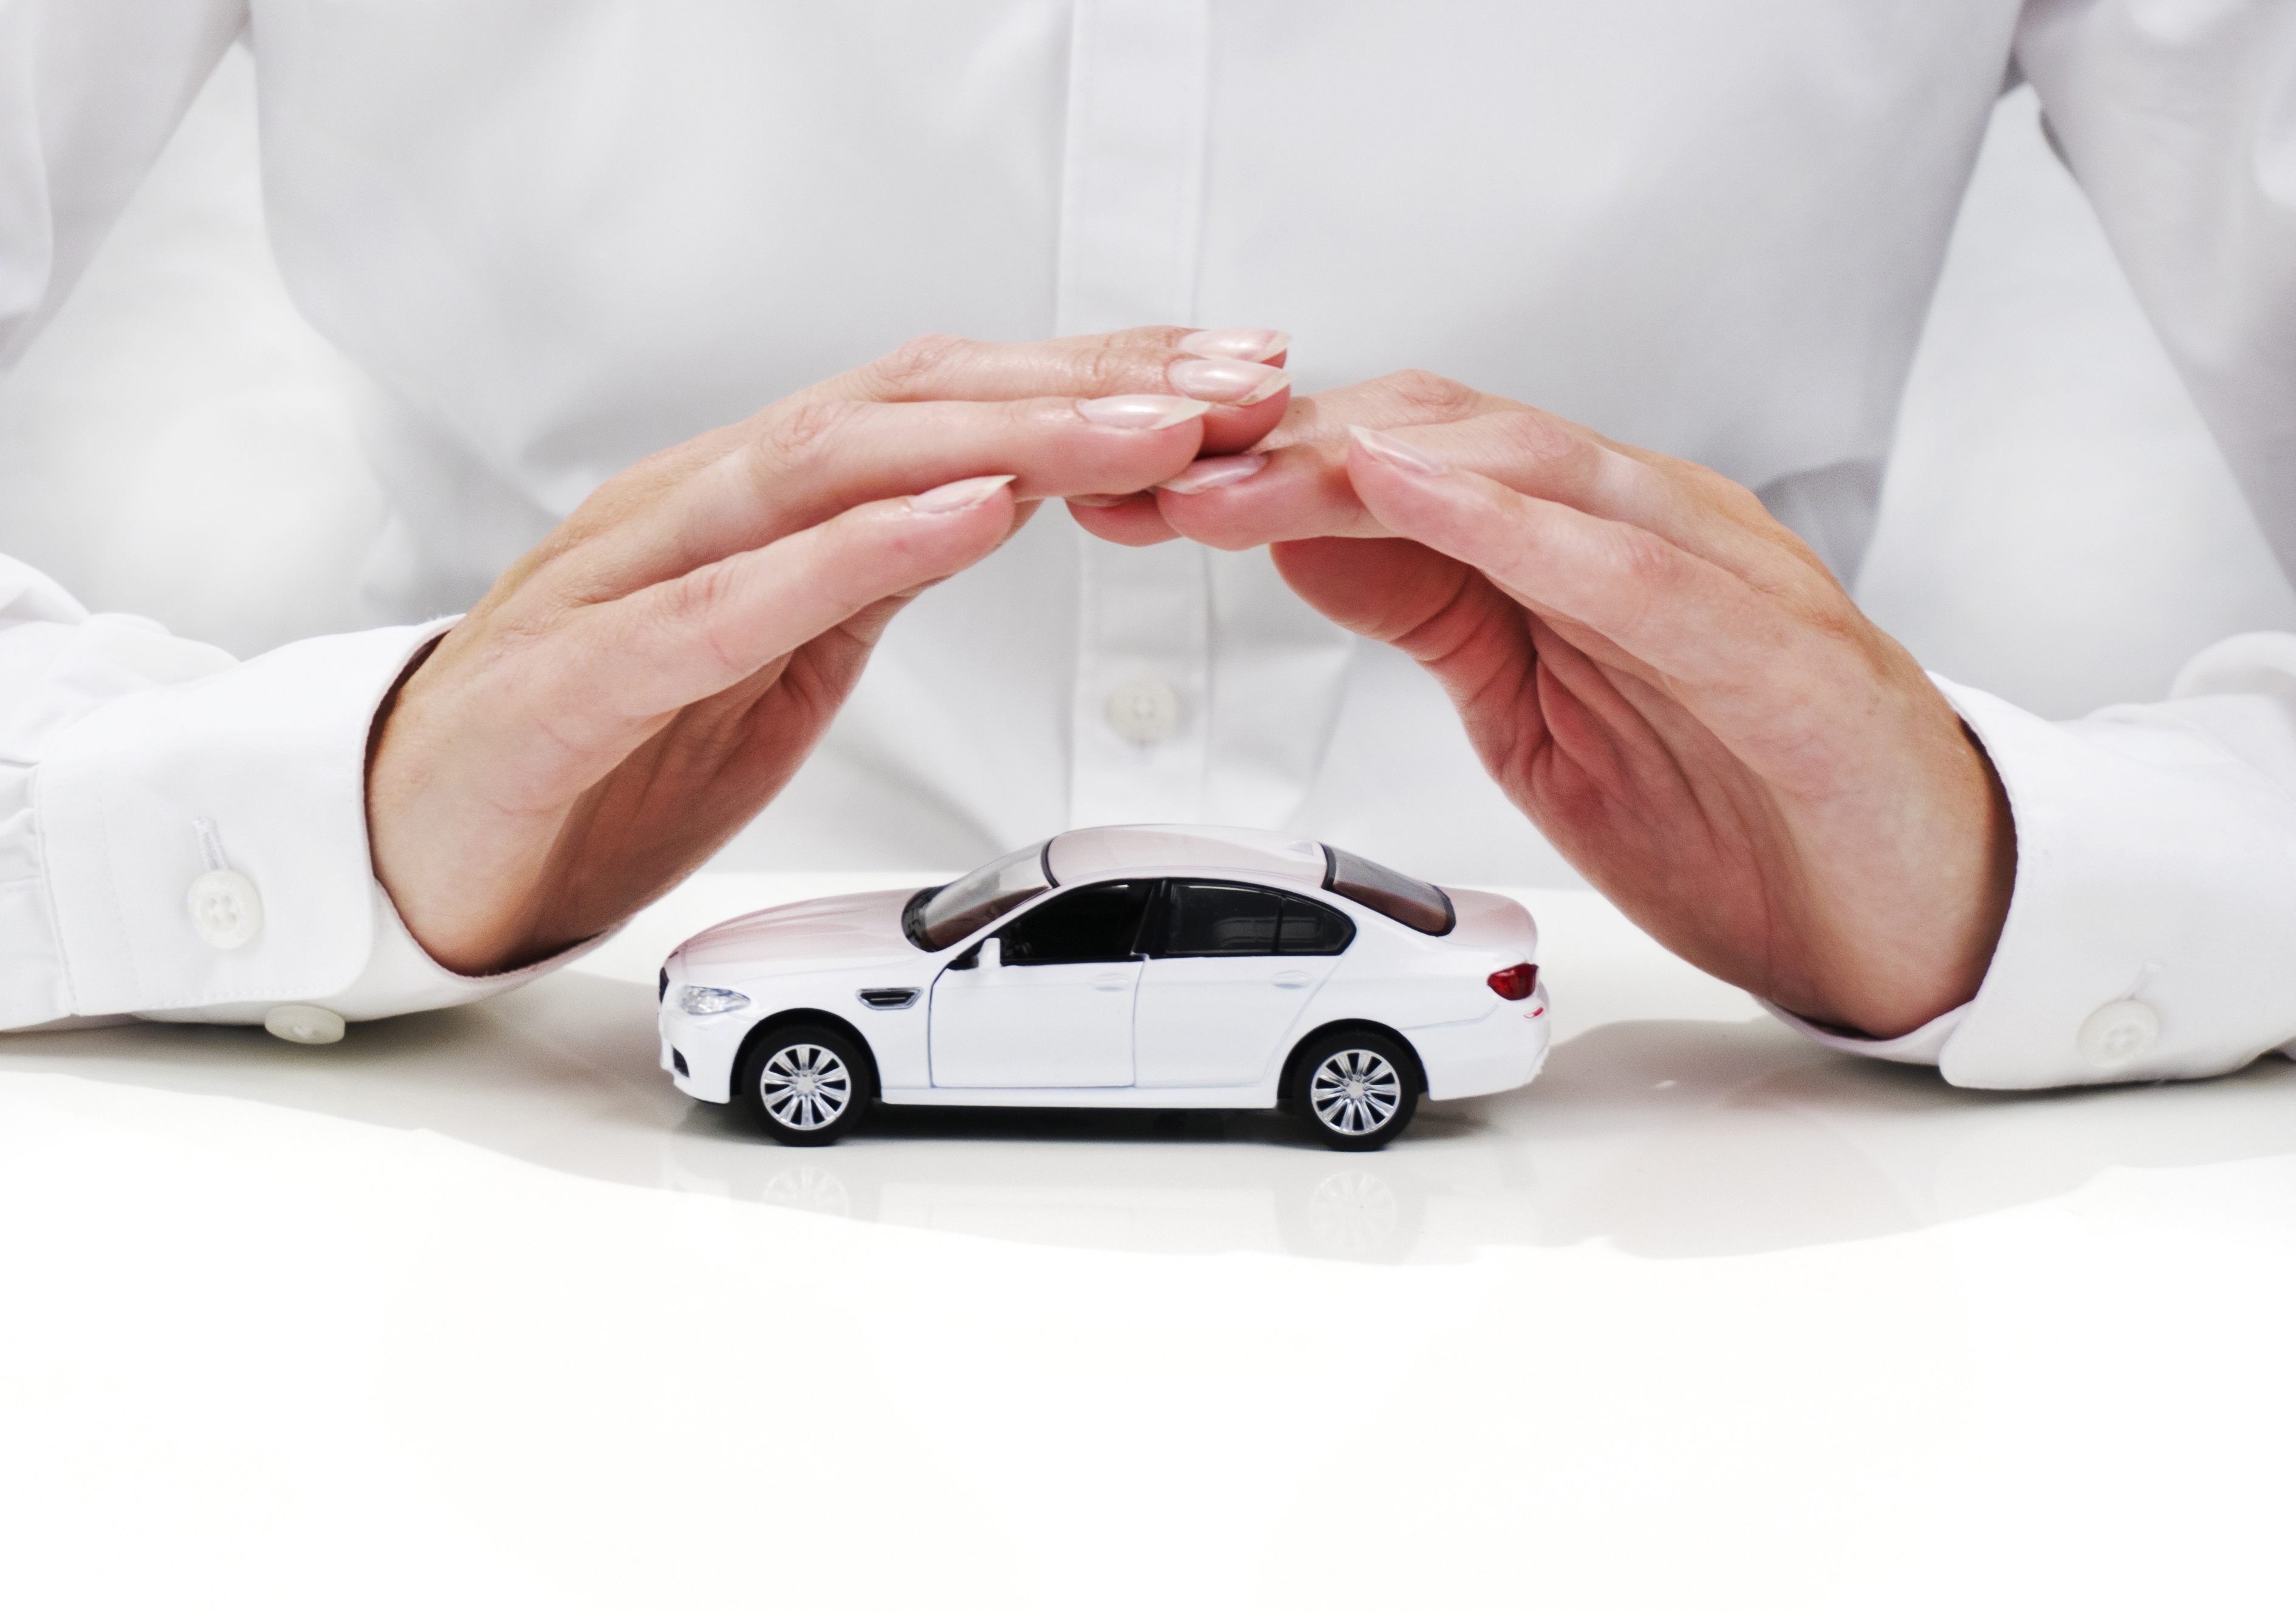 Usa Auto Insurance >> Why Auto Insurance Should Be Seen As An Investment